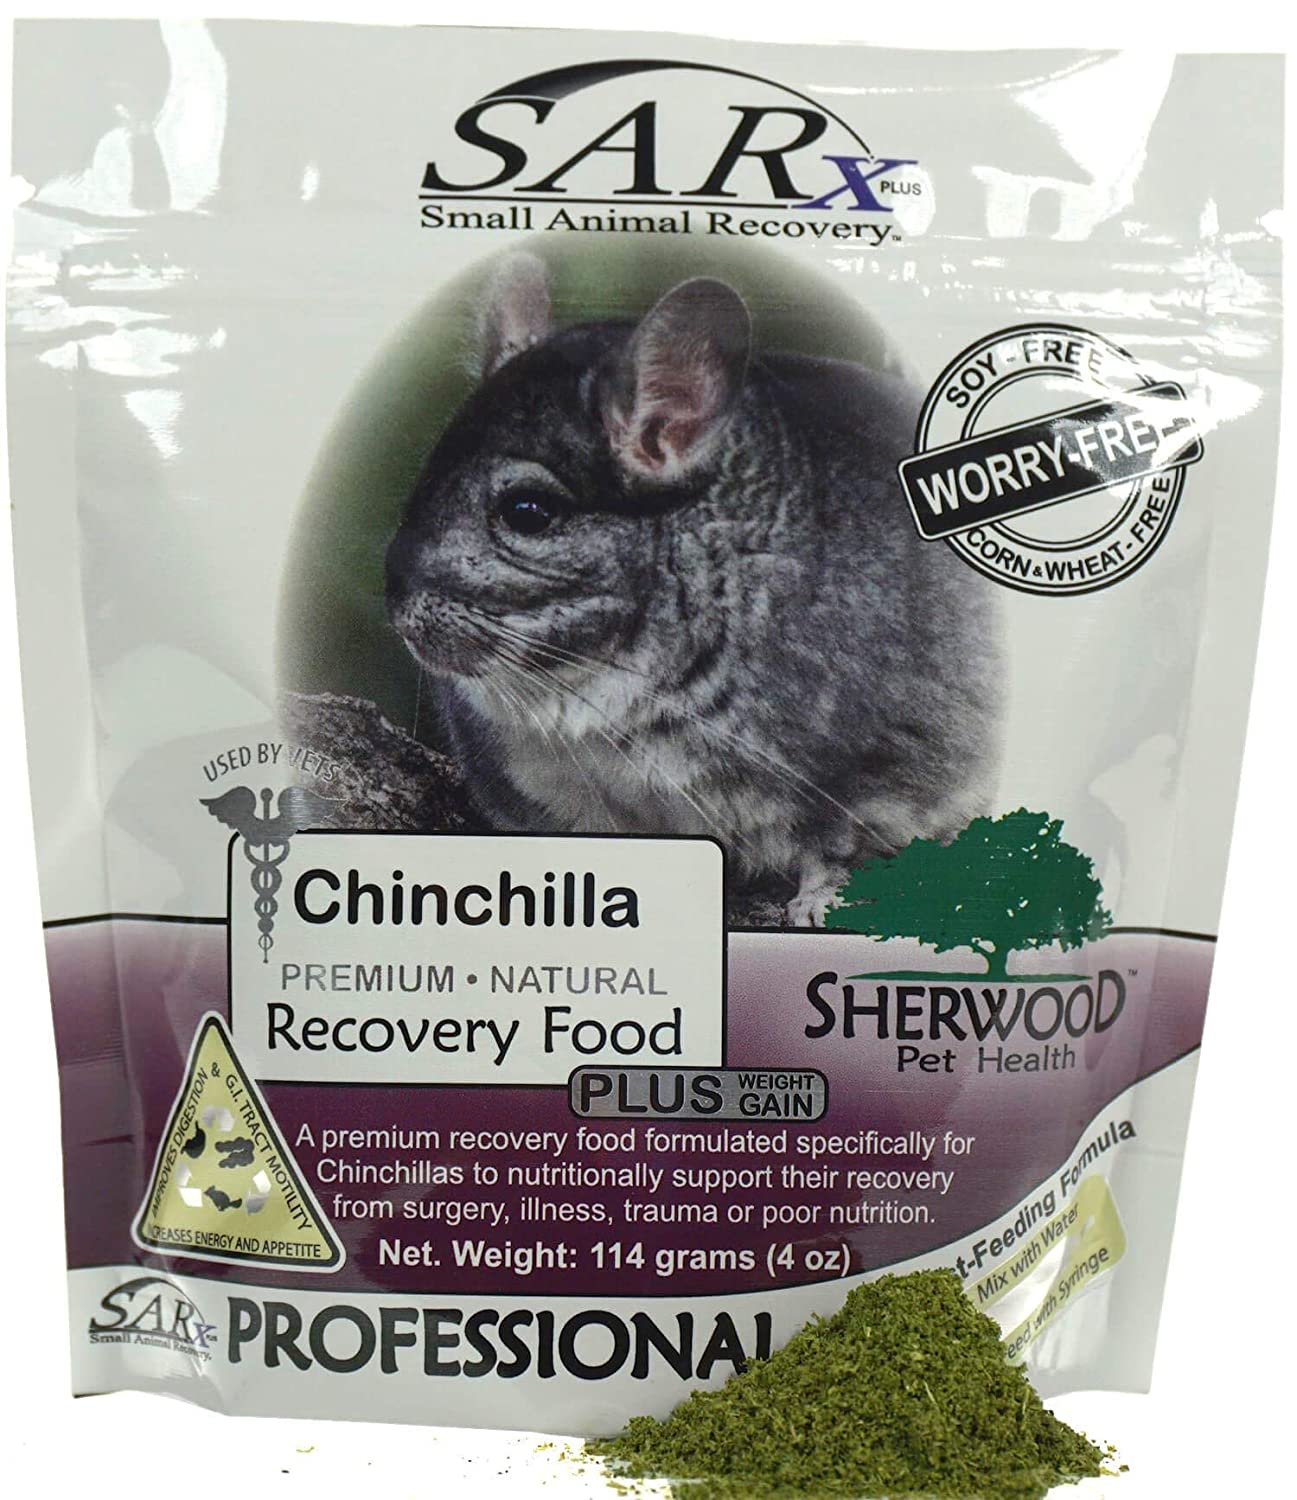 114 grams by Sherwood Pet Health compare to Critical Care Sherwood SARx PLUS for Chinchillas soy-free